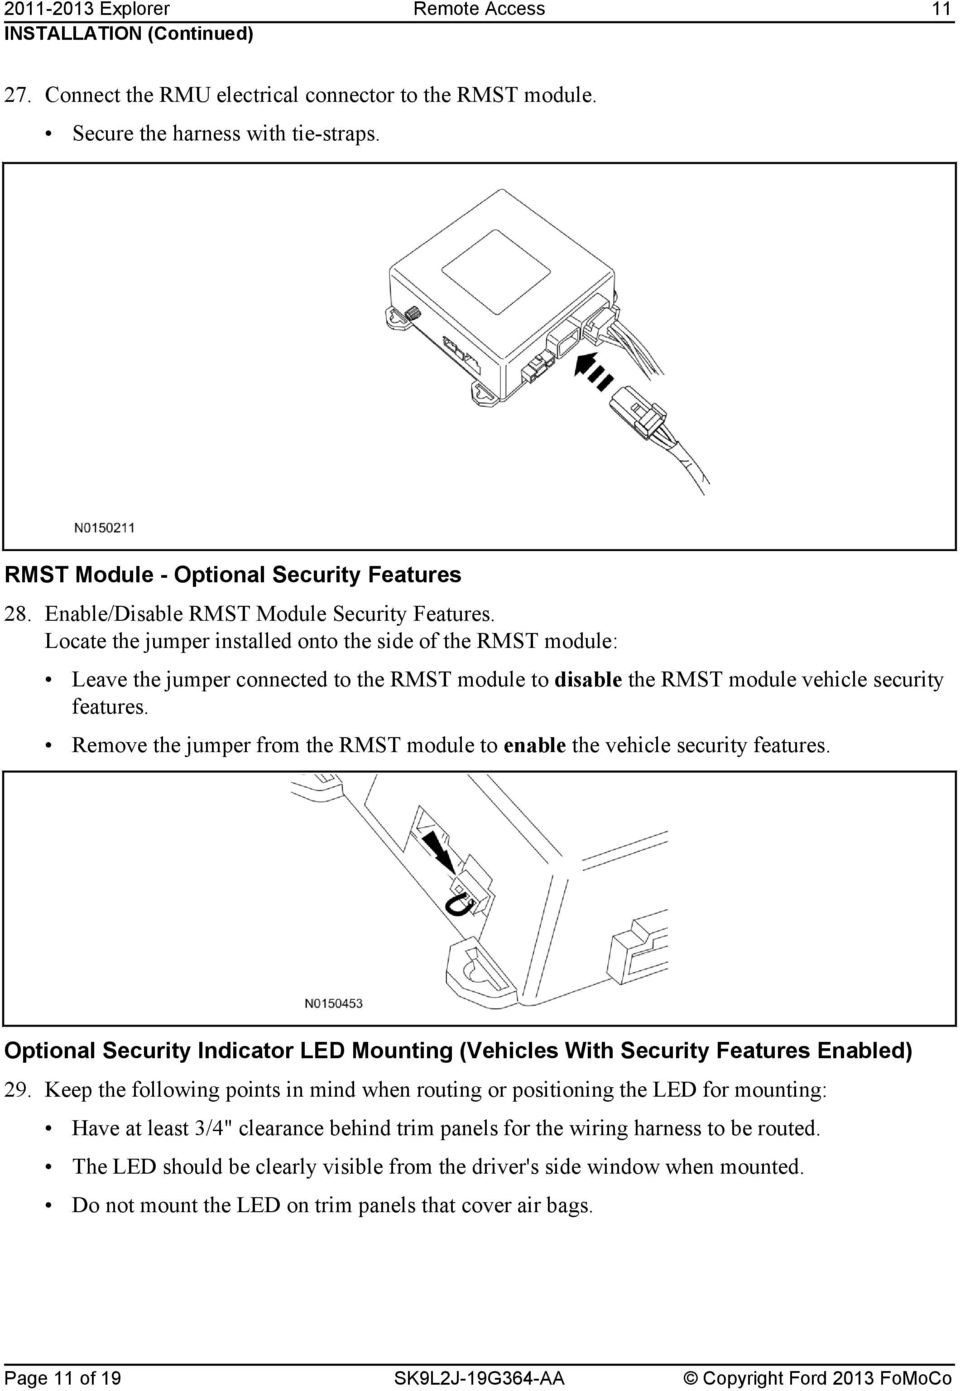 Locate the jumper installed onto the side of the RMST module: Leave the jumper connected to the RMST module to disable the RMST module vehicle security features.